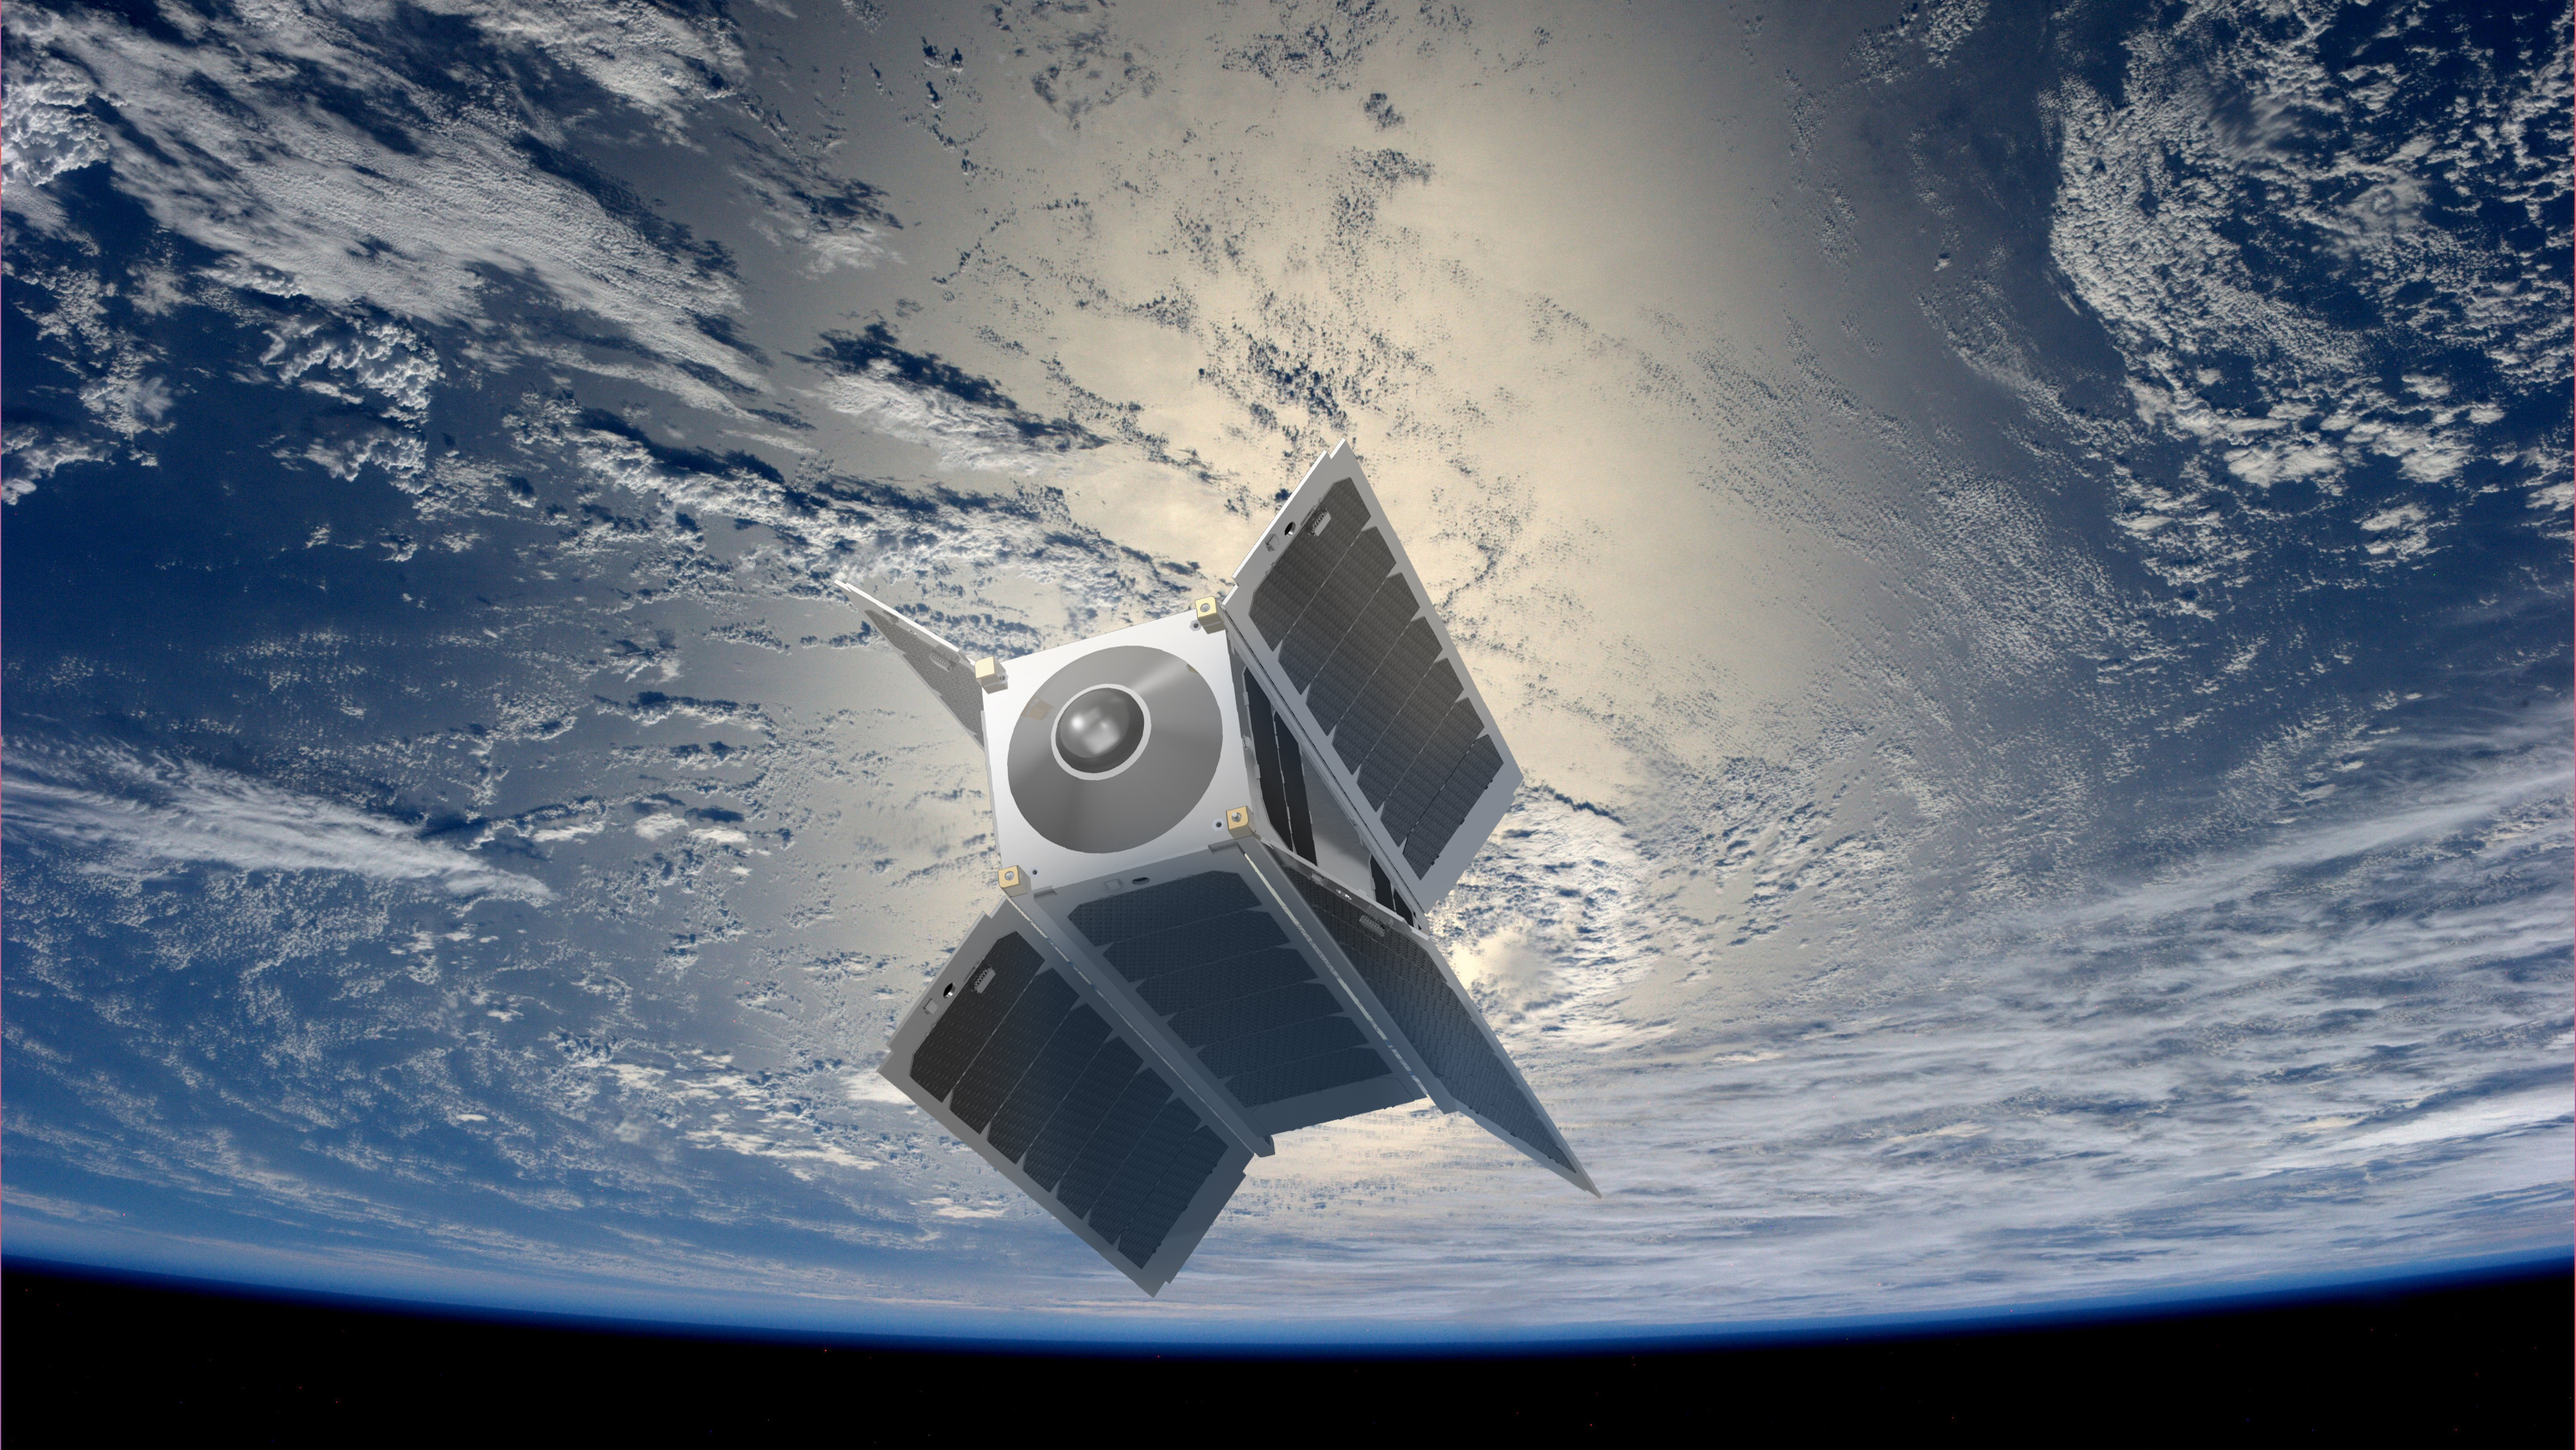 The world's first VR camera satellite launches next summer